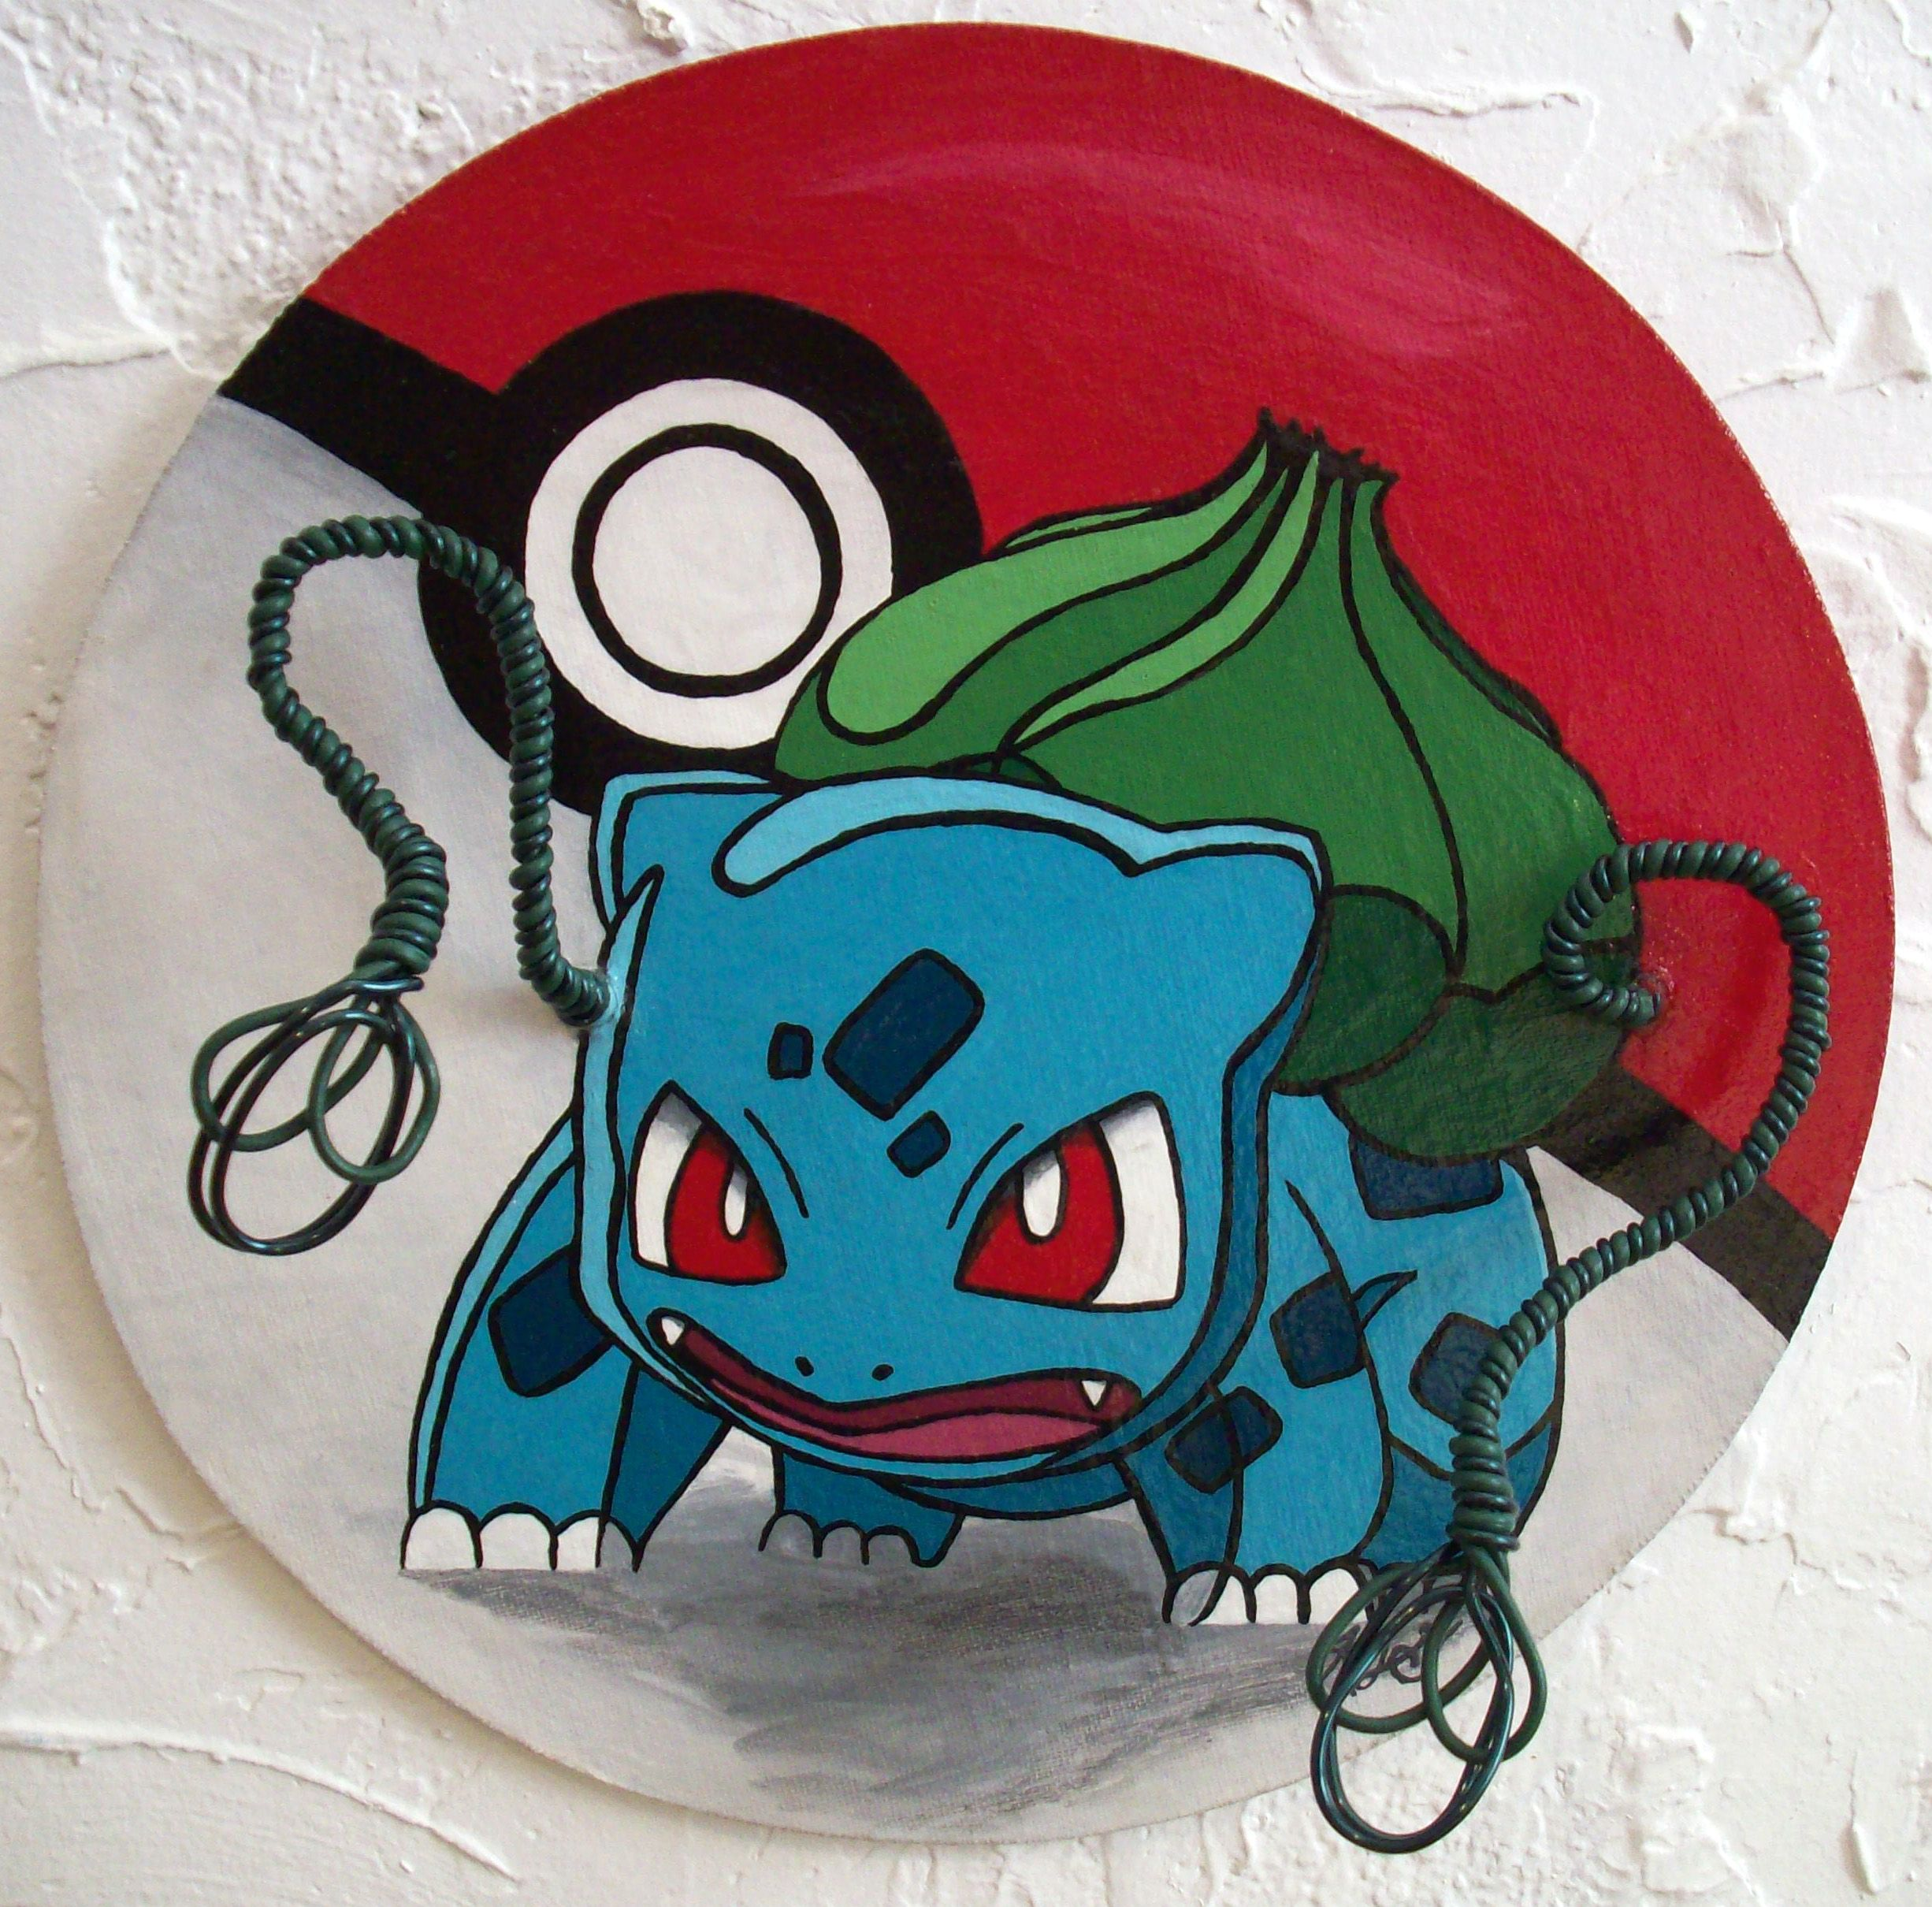 Bulbasaur I choose you - Pokémon Balbasaur featuring 3D wire vine ...